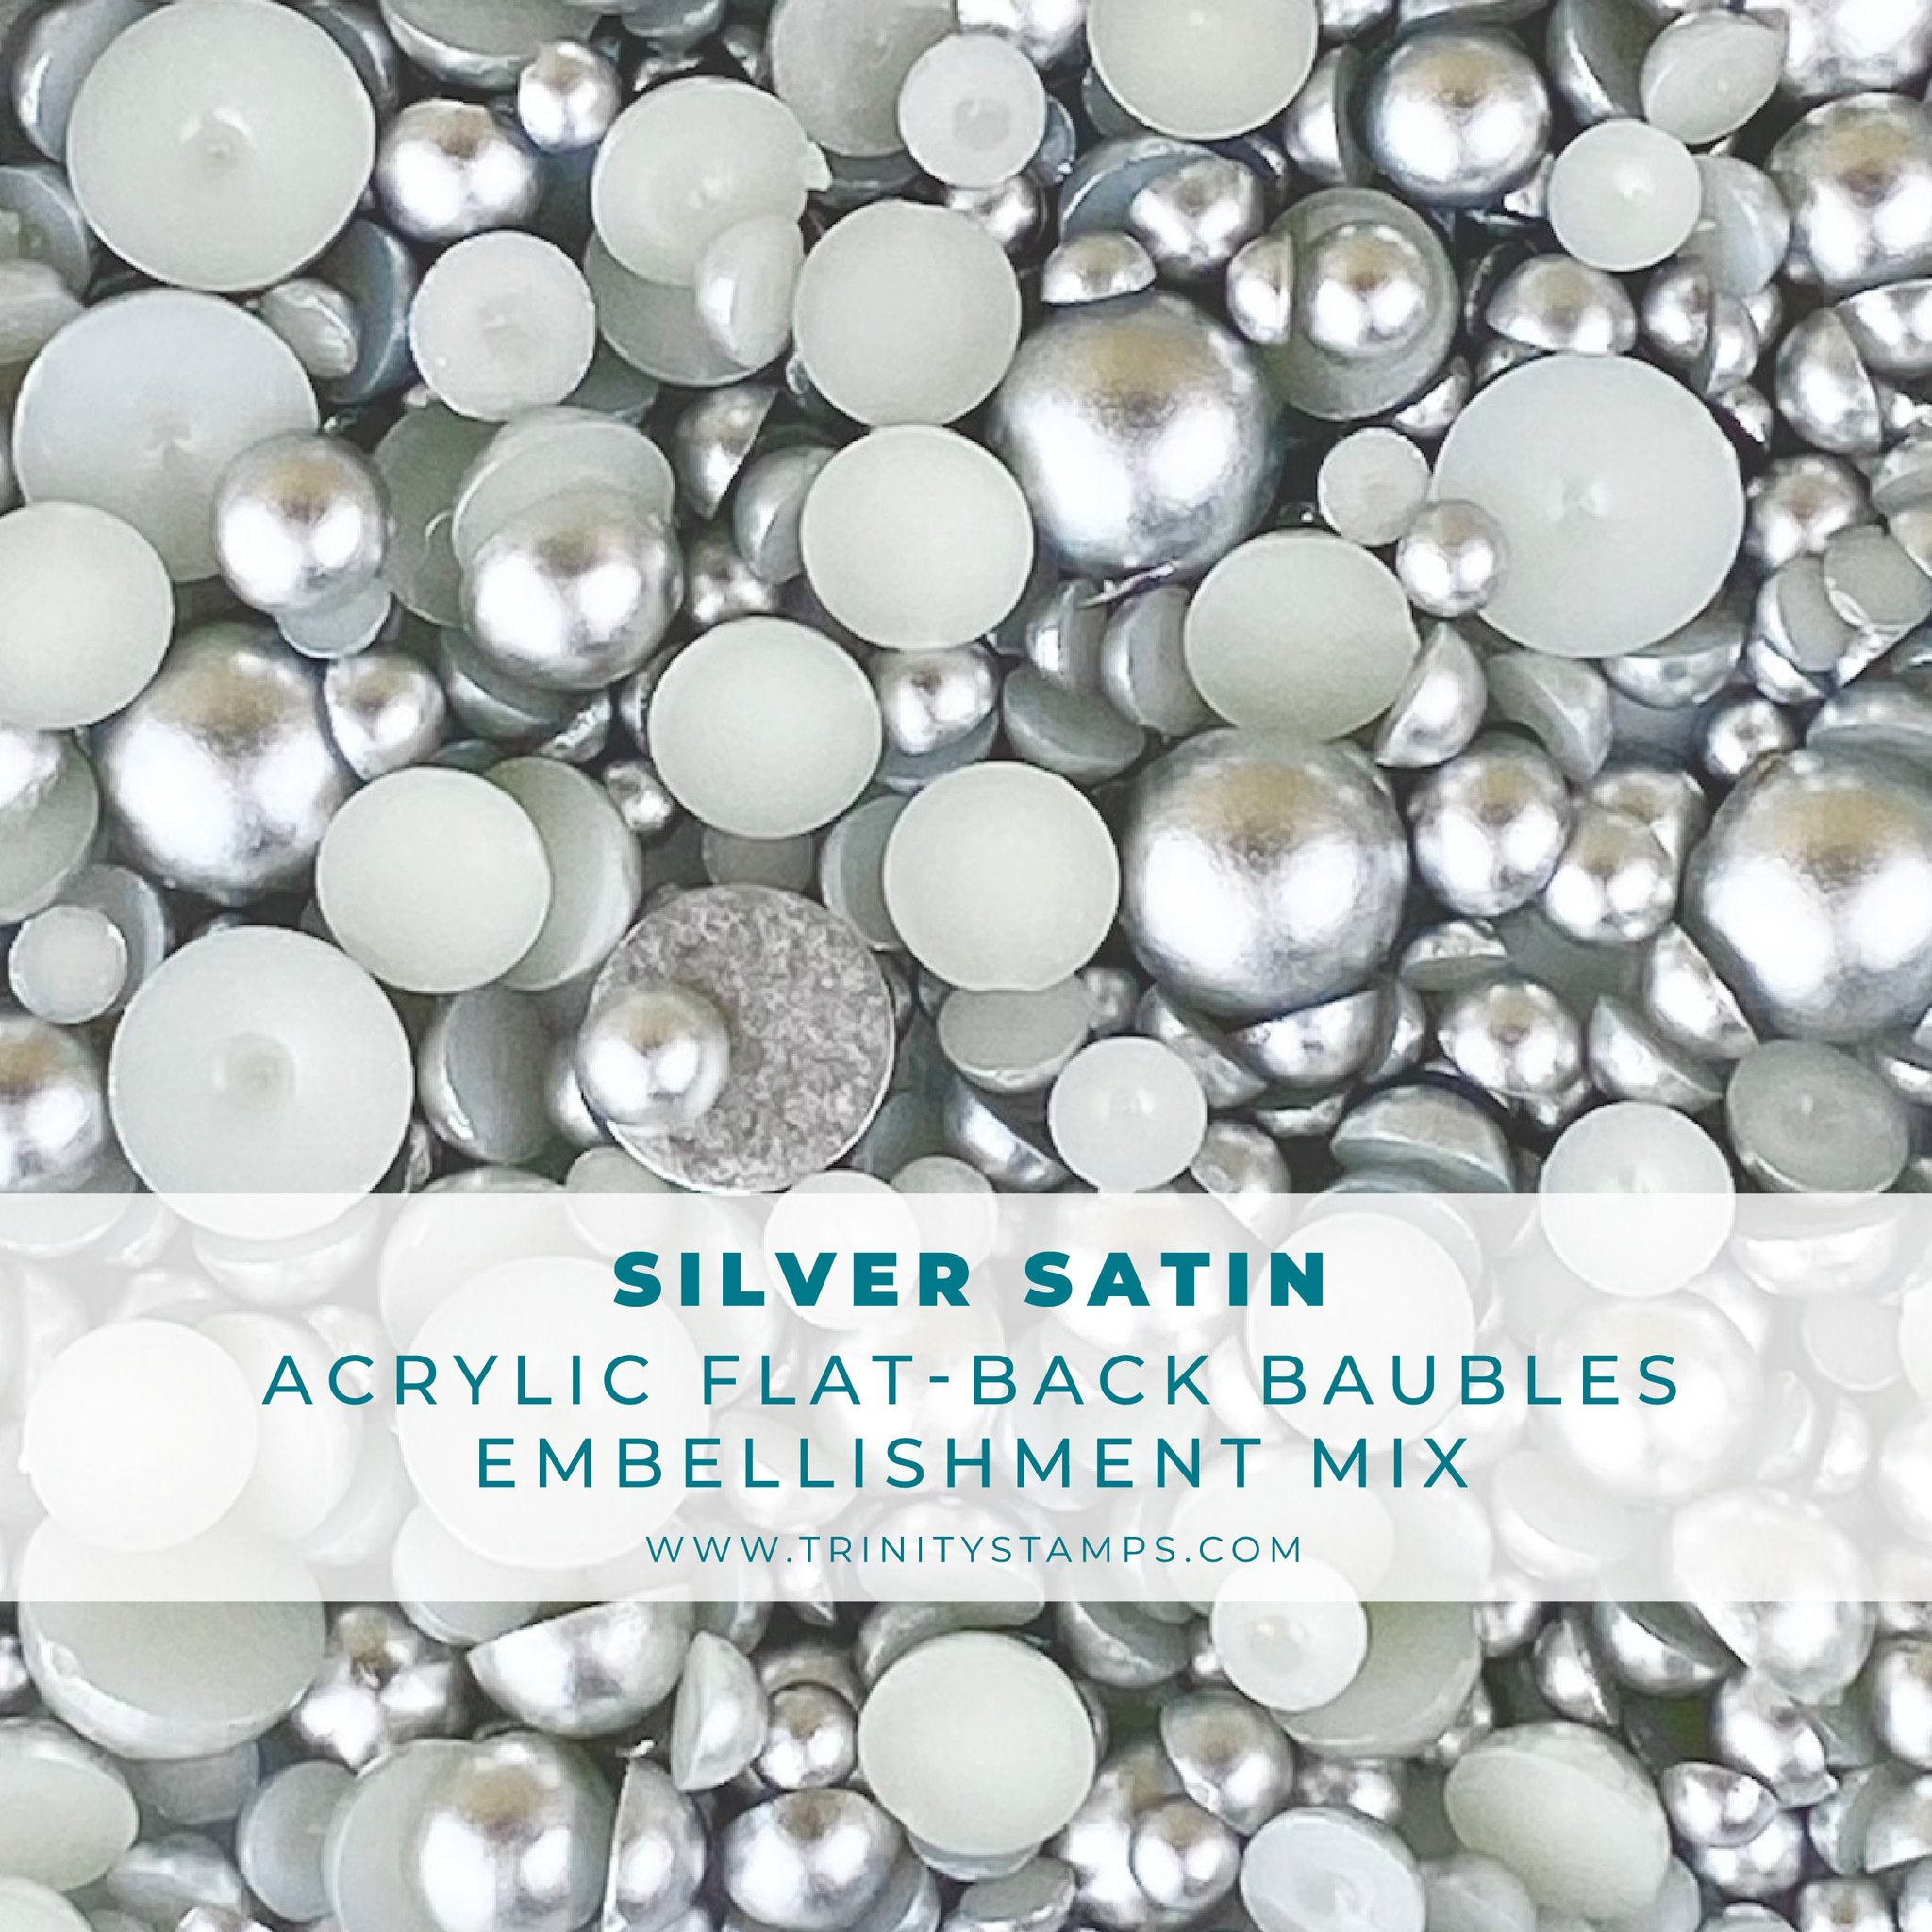 *NEW* - Trinity Stamps - Silver Satin Baubles Embellishment Mix